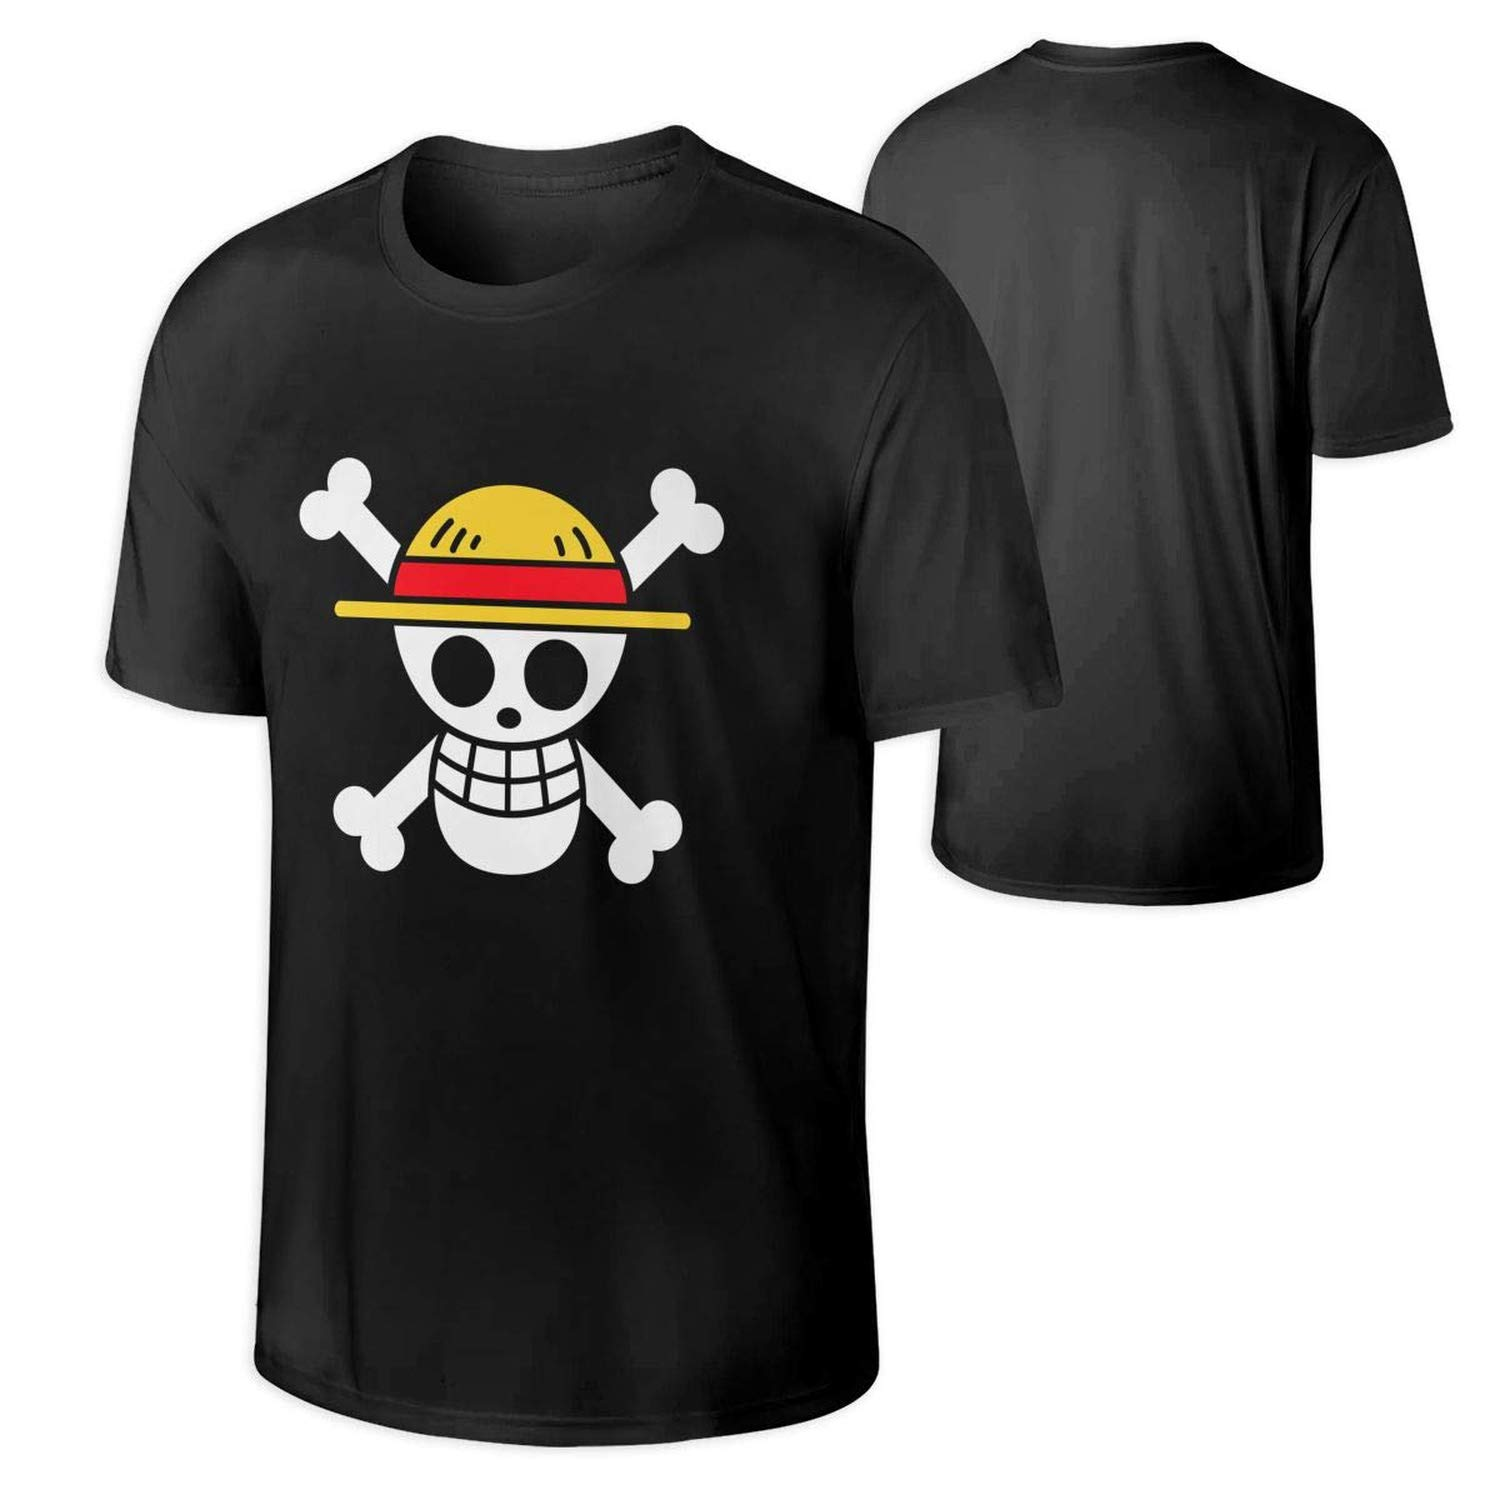 One Piece Logo Classic Hip Hop Music Band Short Sleeves T 5684 Shirts